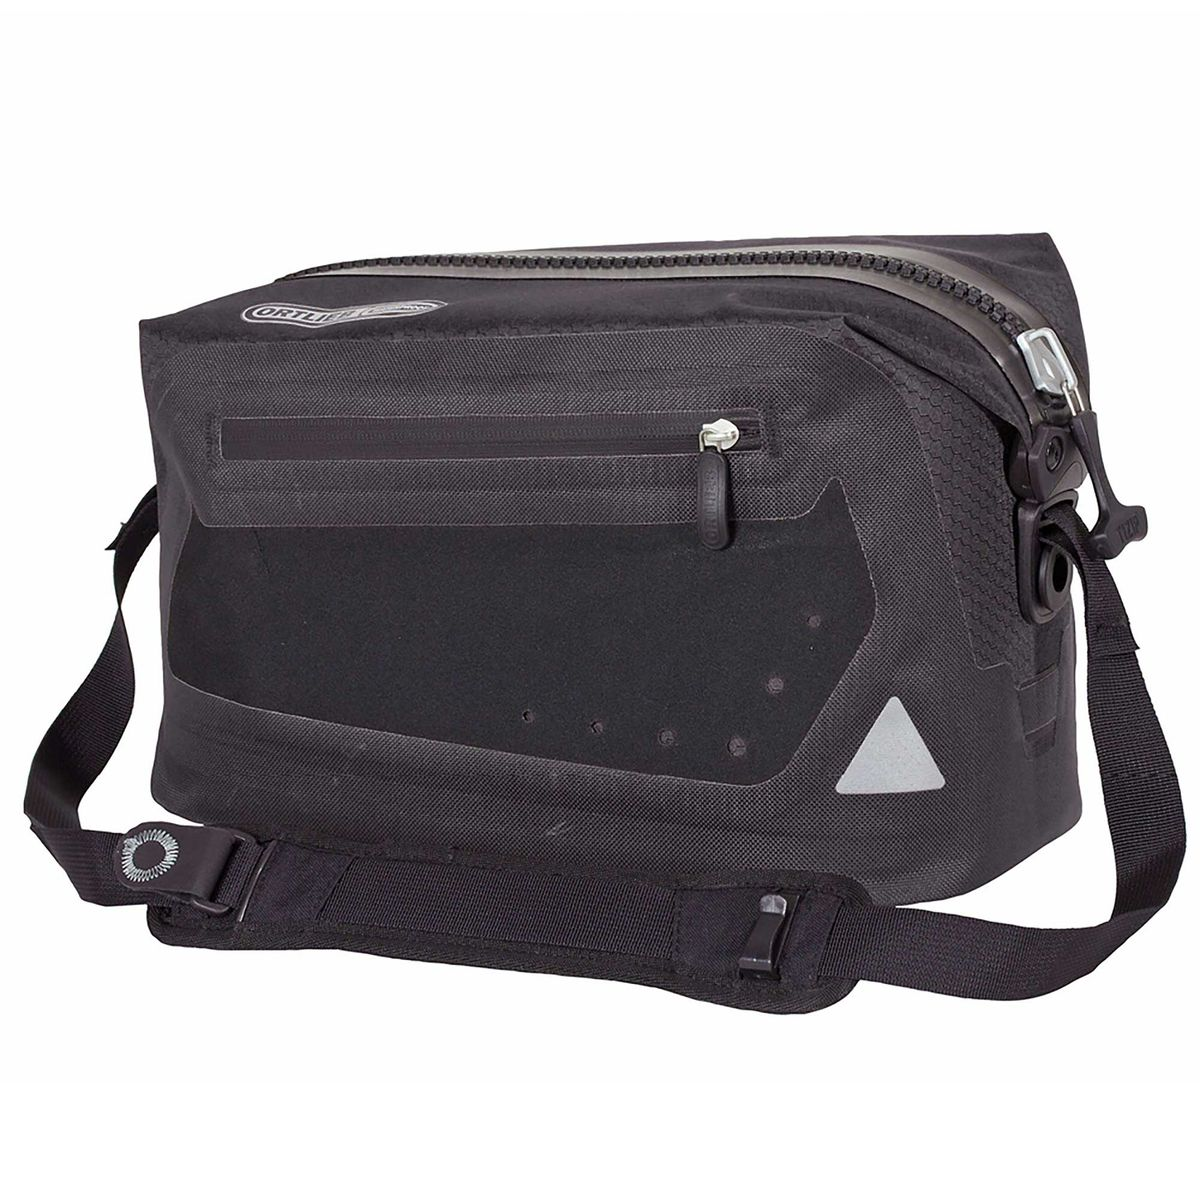 City Trunk-Bag with RACK-LOCK Adapter